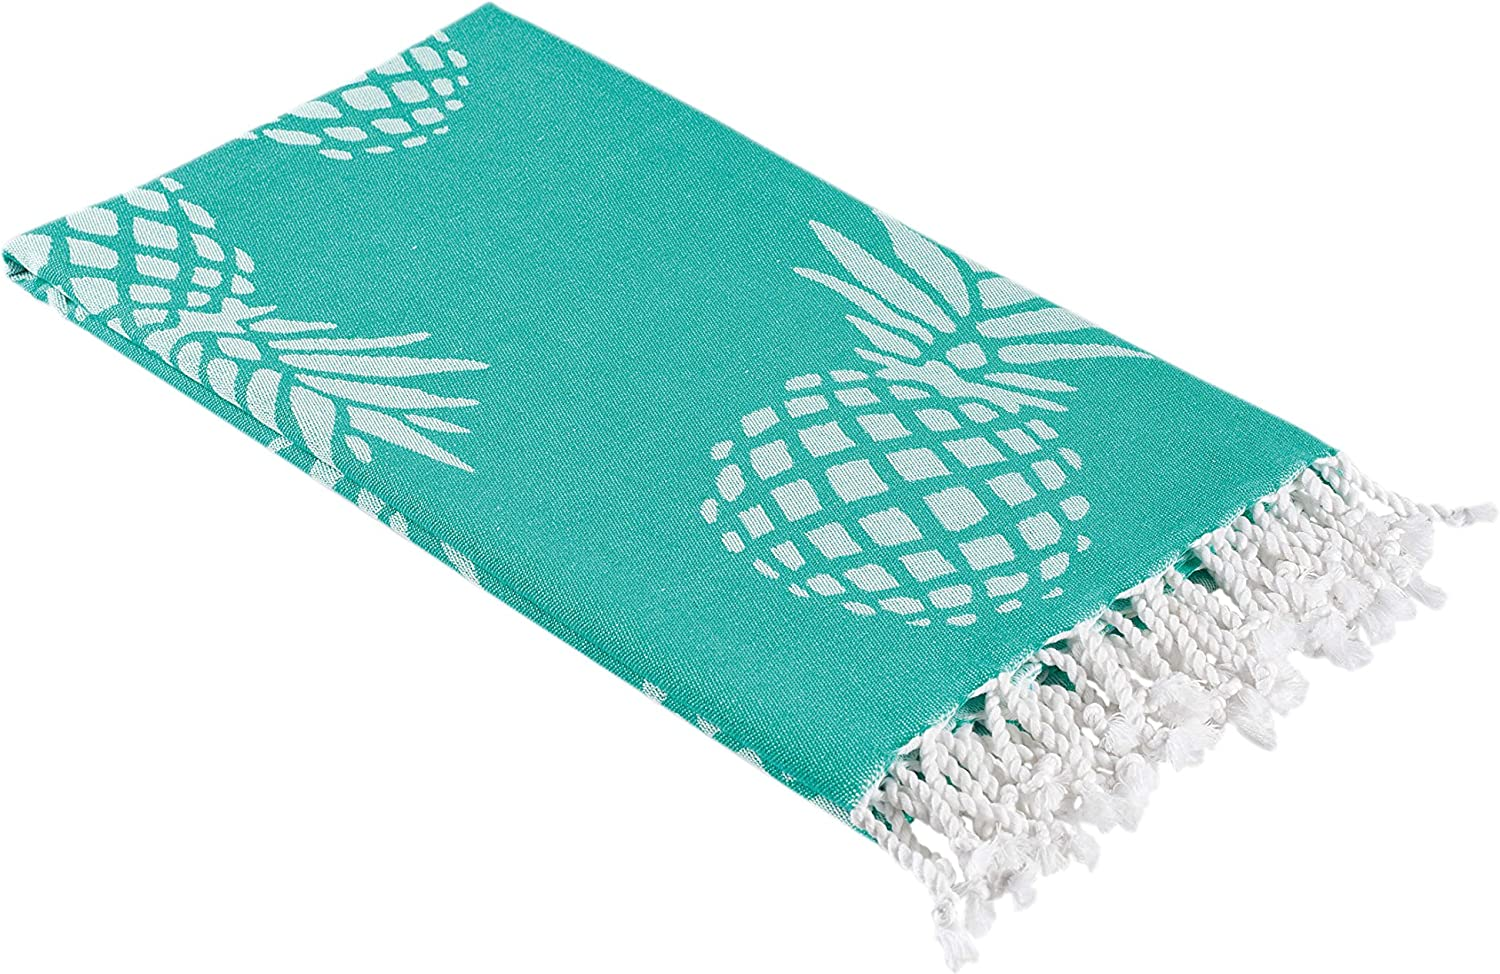 InfuseZen Pineapple Print Turkish Towel in an Extra Large Size, Thin Peshtemal Beach Towel or Bath Towel in Mint Green